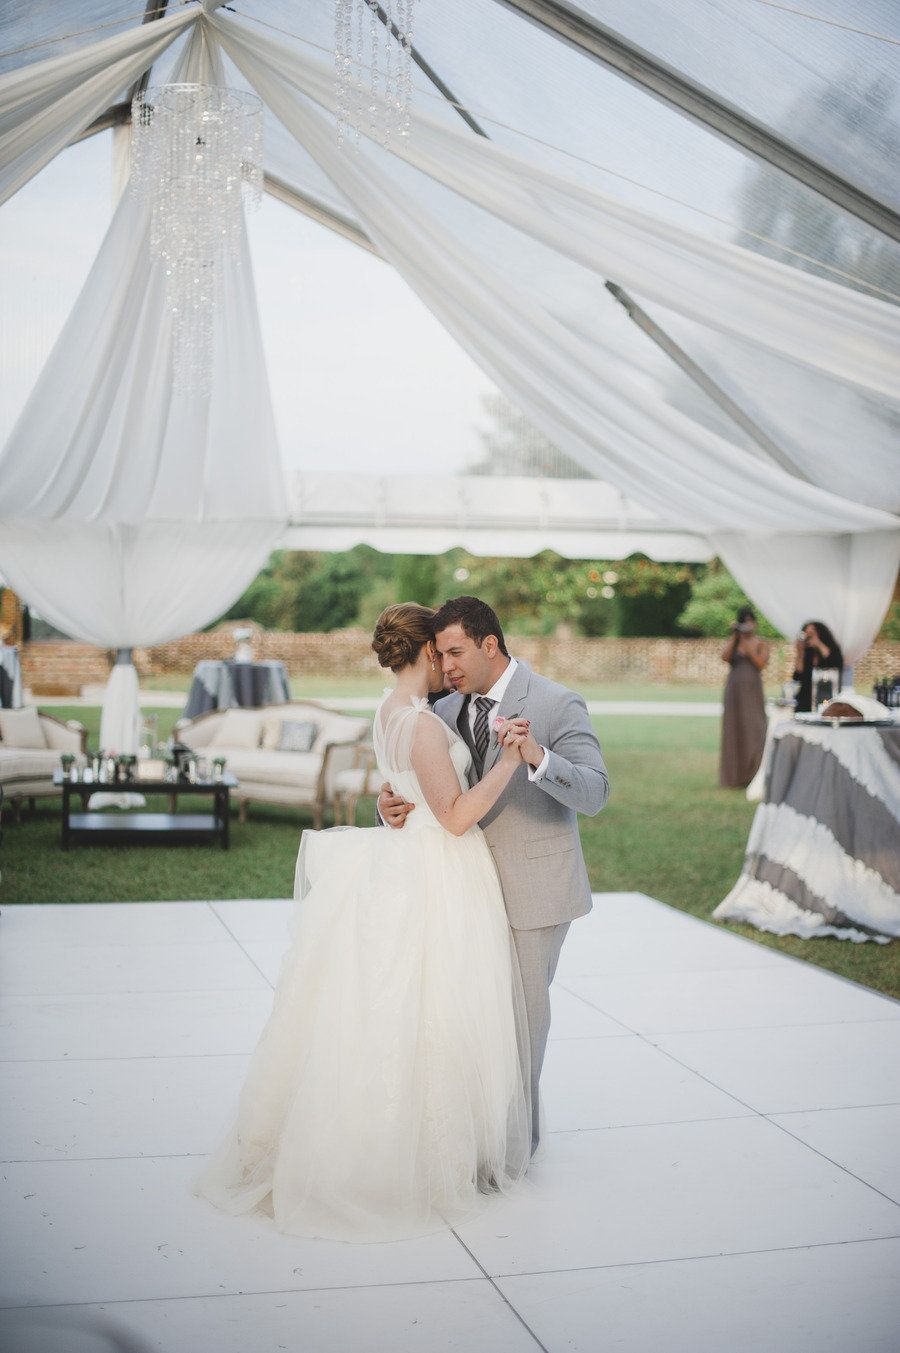 Wedding decor images zimbabwe  Charleston Wedding from Luke Wilson Special Events  Tim Will